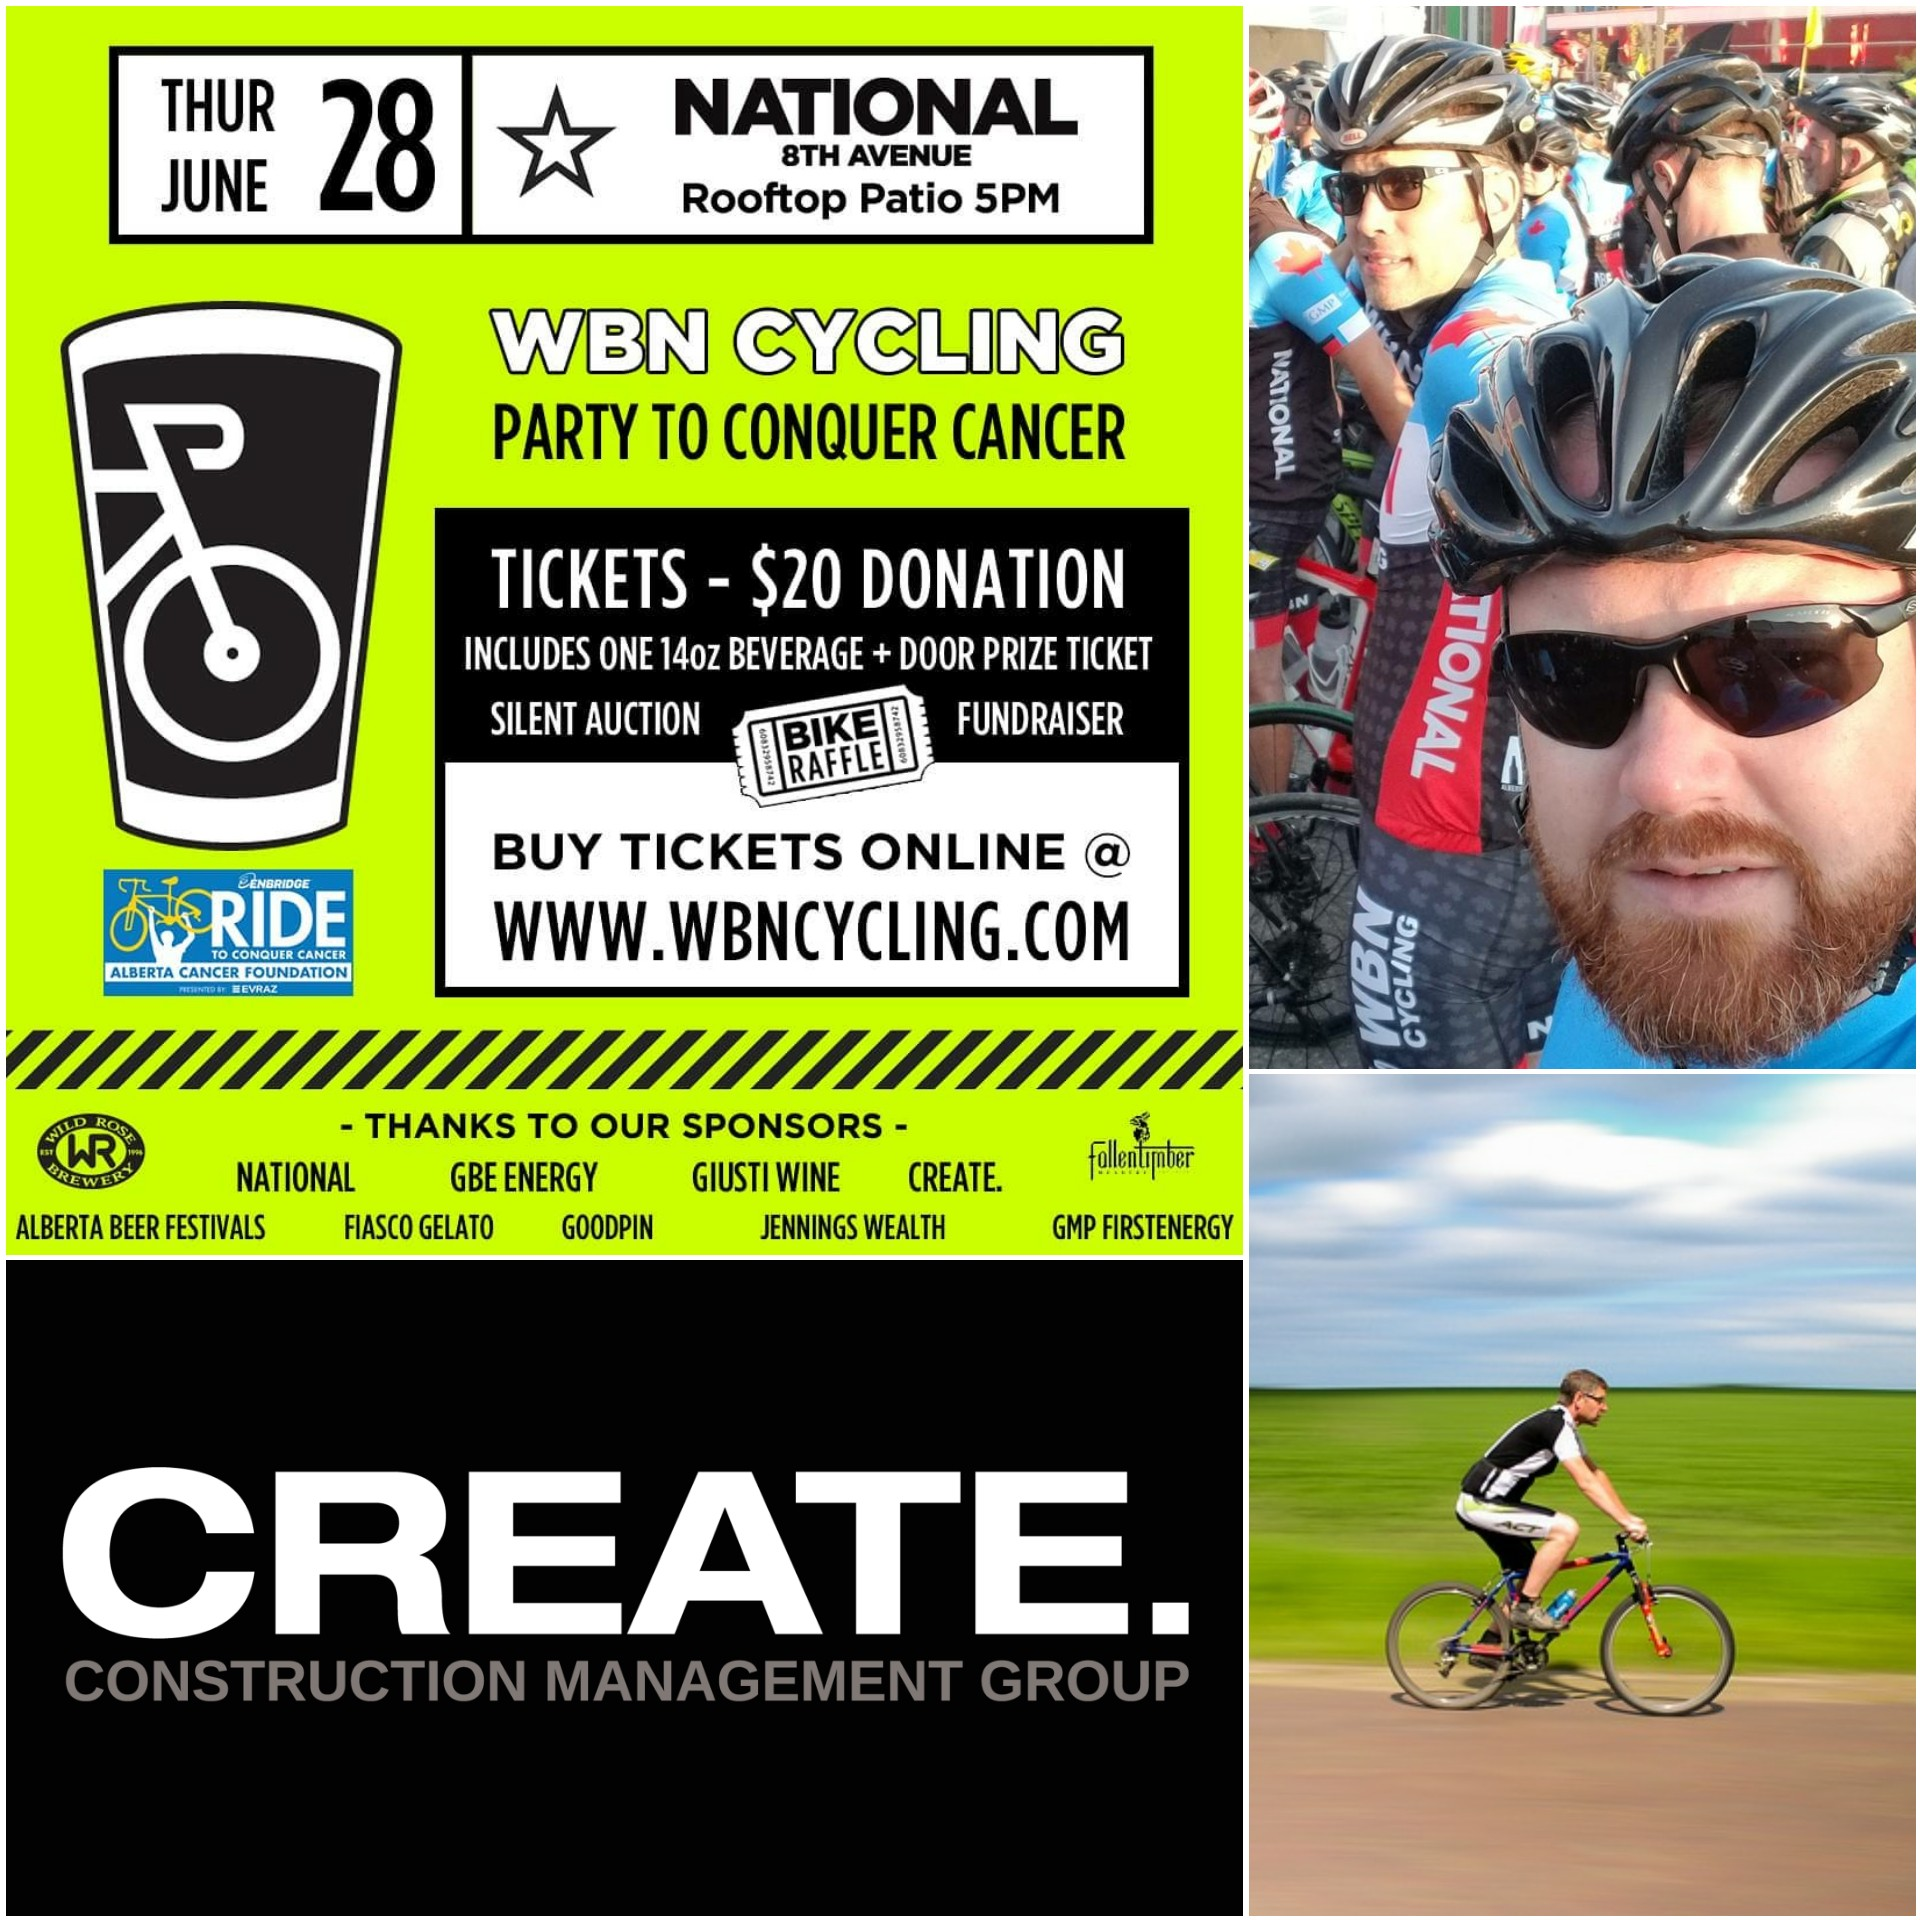 We Support WBN Cycling Fundraiser to Kick Cancer!